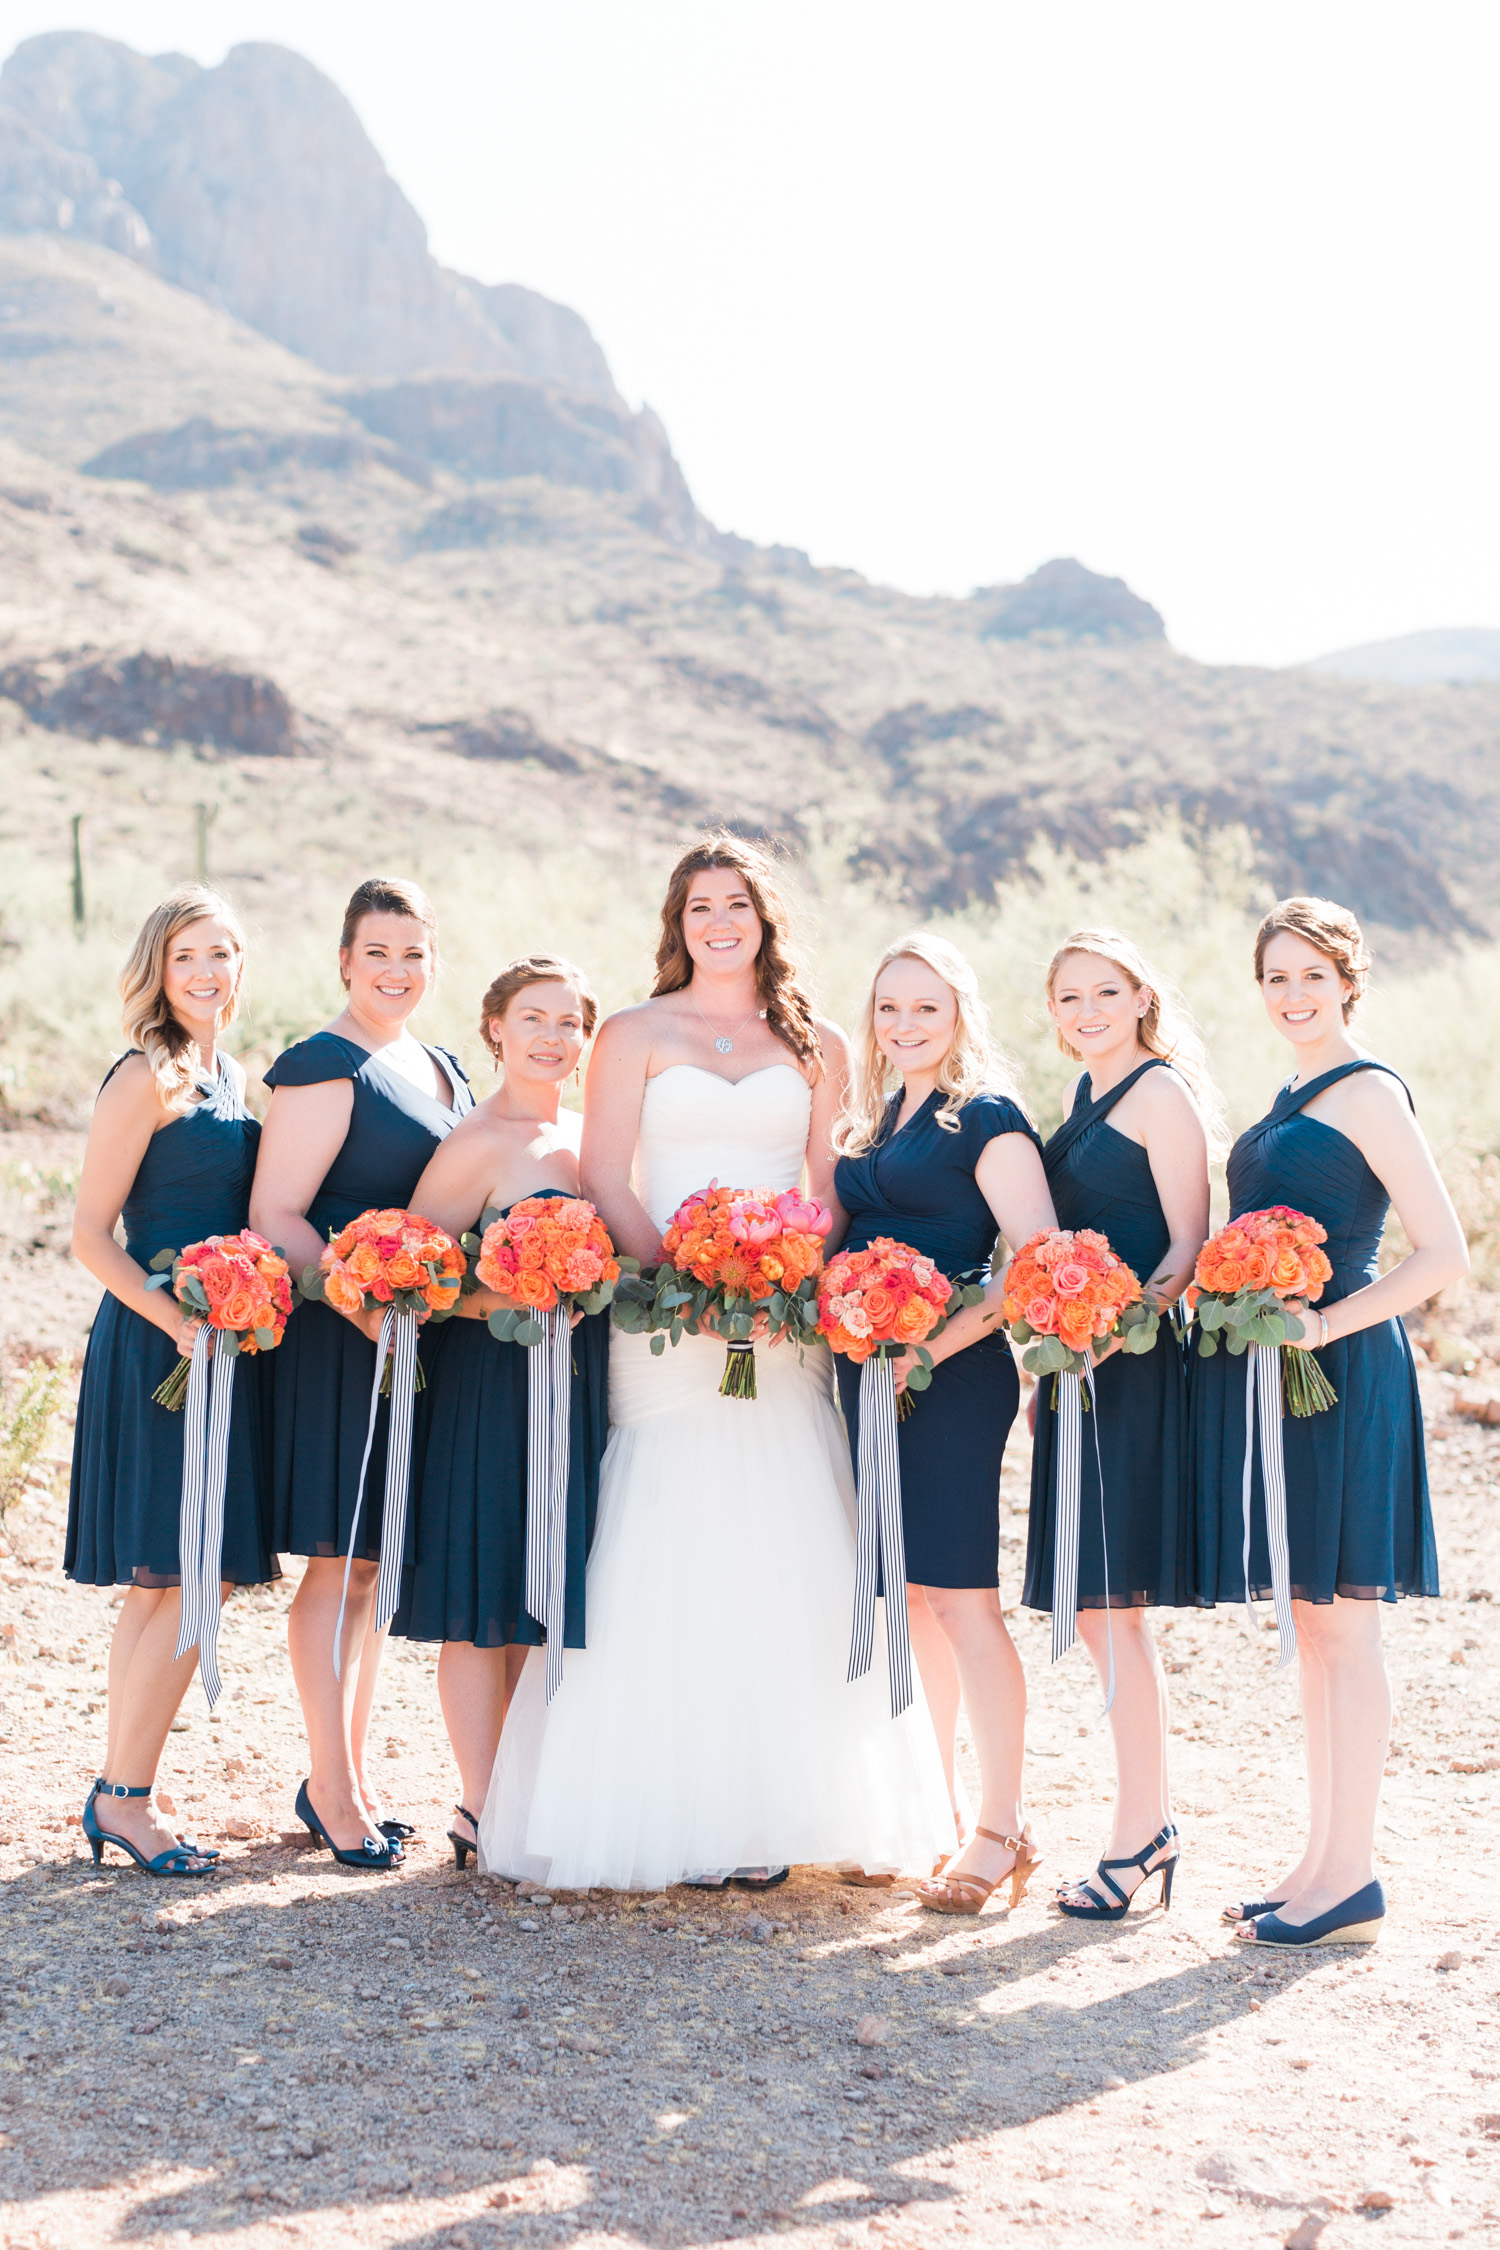 Beautiful bride and bridesmaids in navy with salmon bouquets, smiling at the camera.